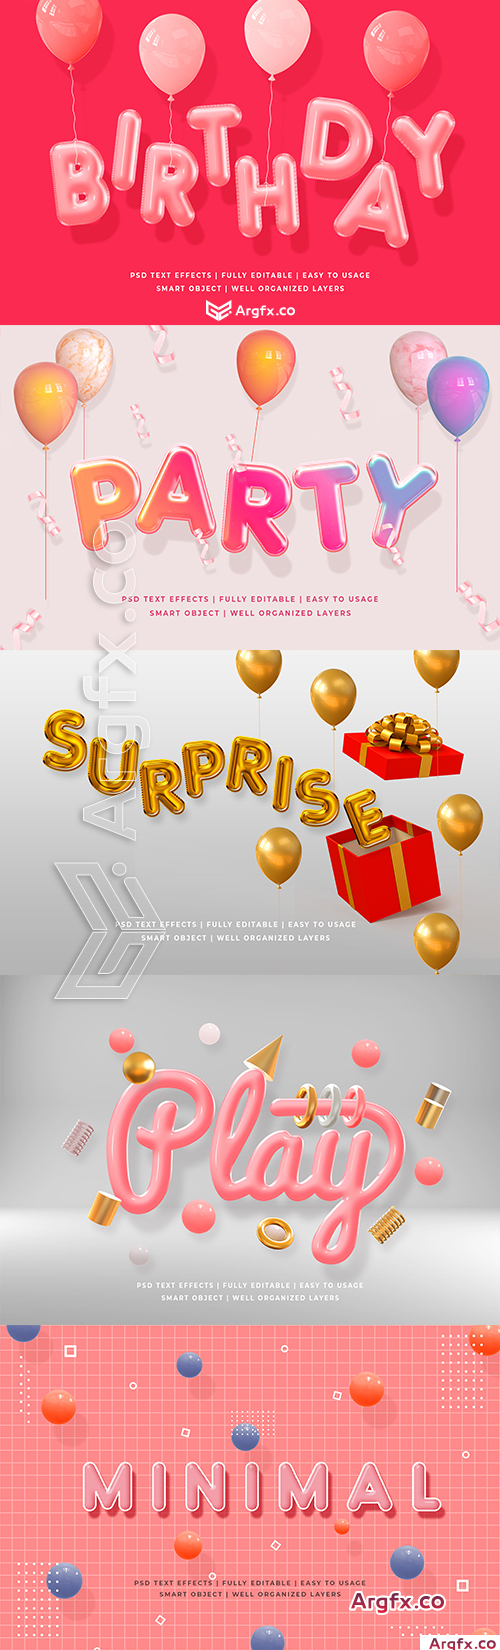 Graphicriver - Birthday Party 3d Text Style Effect Mockup 25633246